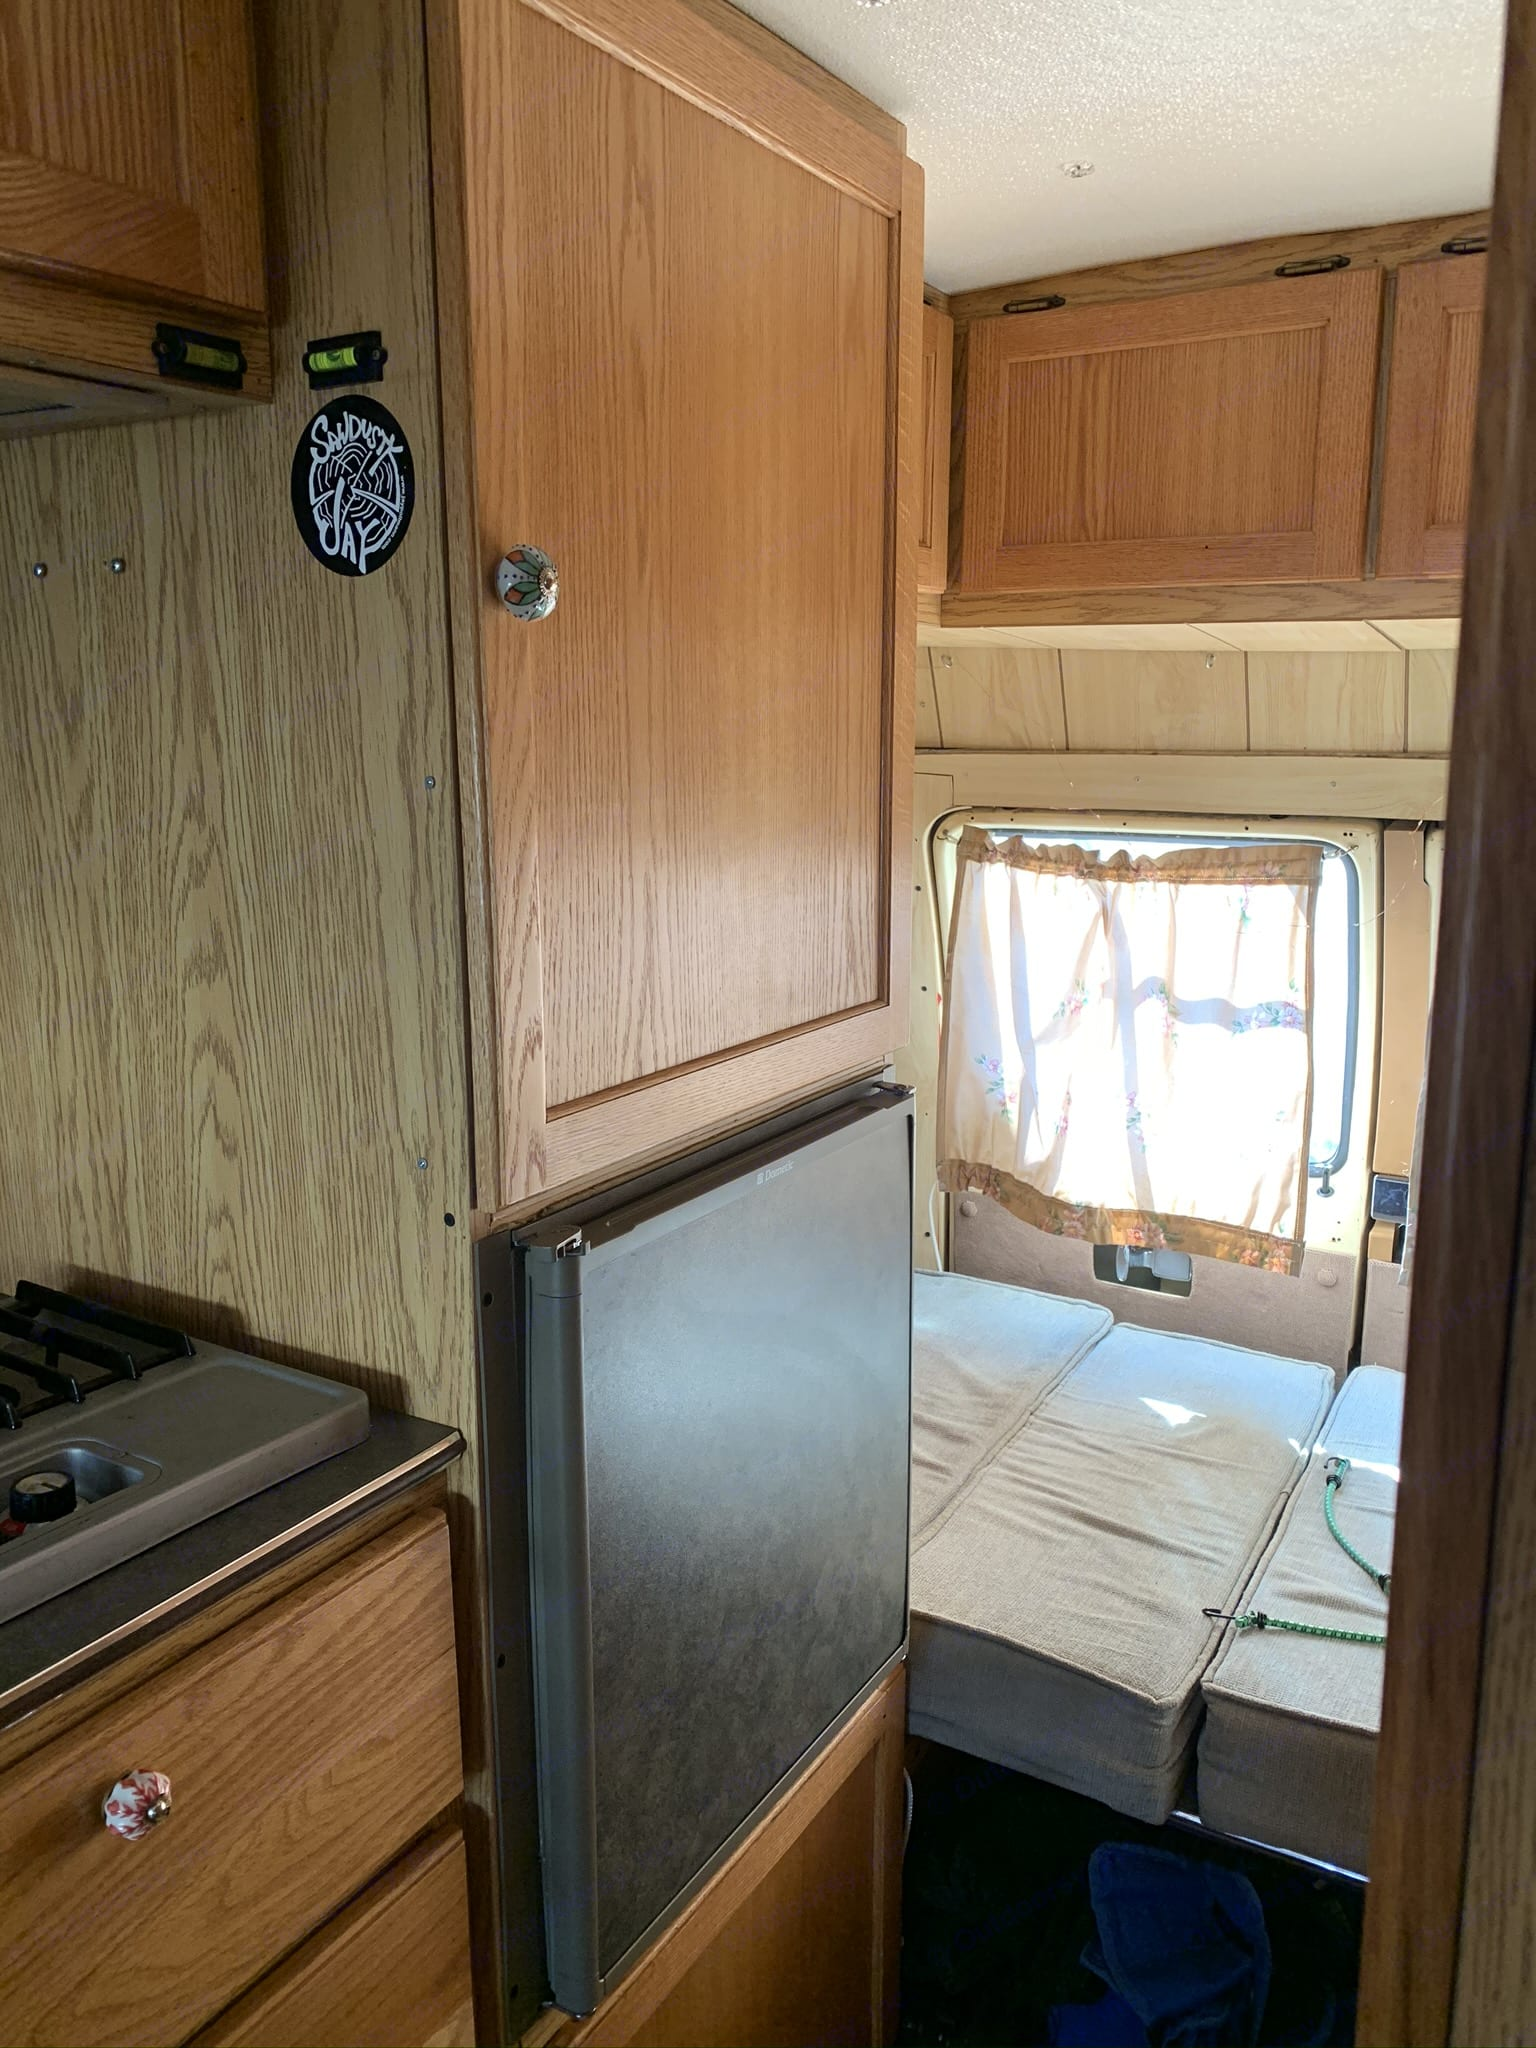 Fridge and back area turns into a small bed and can also be set up at as sitting area with table.. Dodge Dodge Bighorn 3500 Heavy Duty 1985